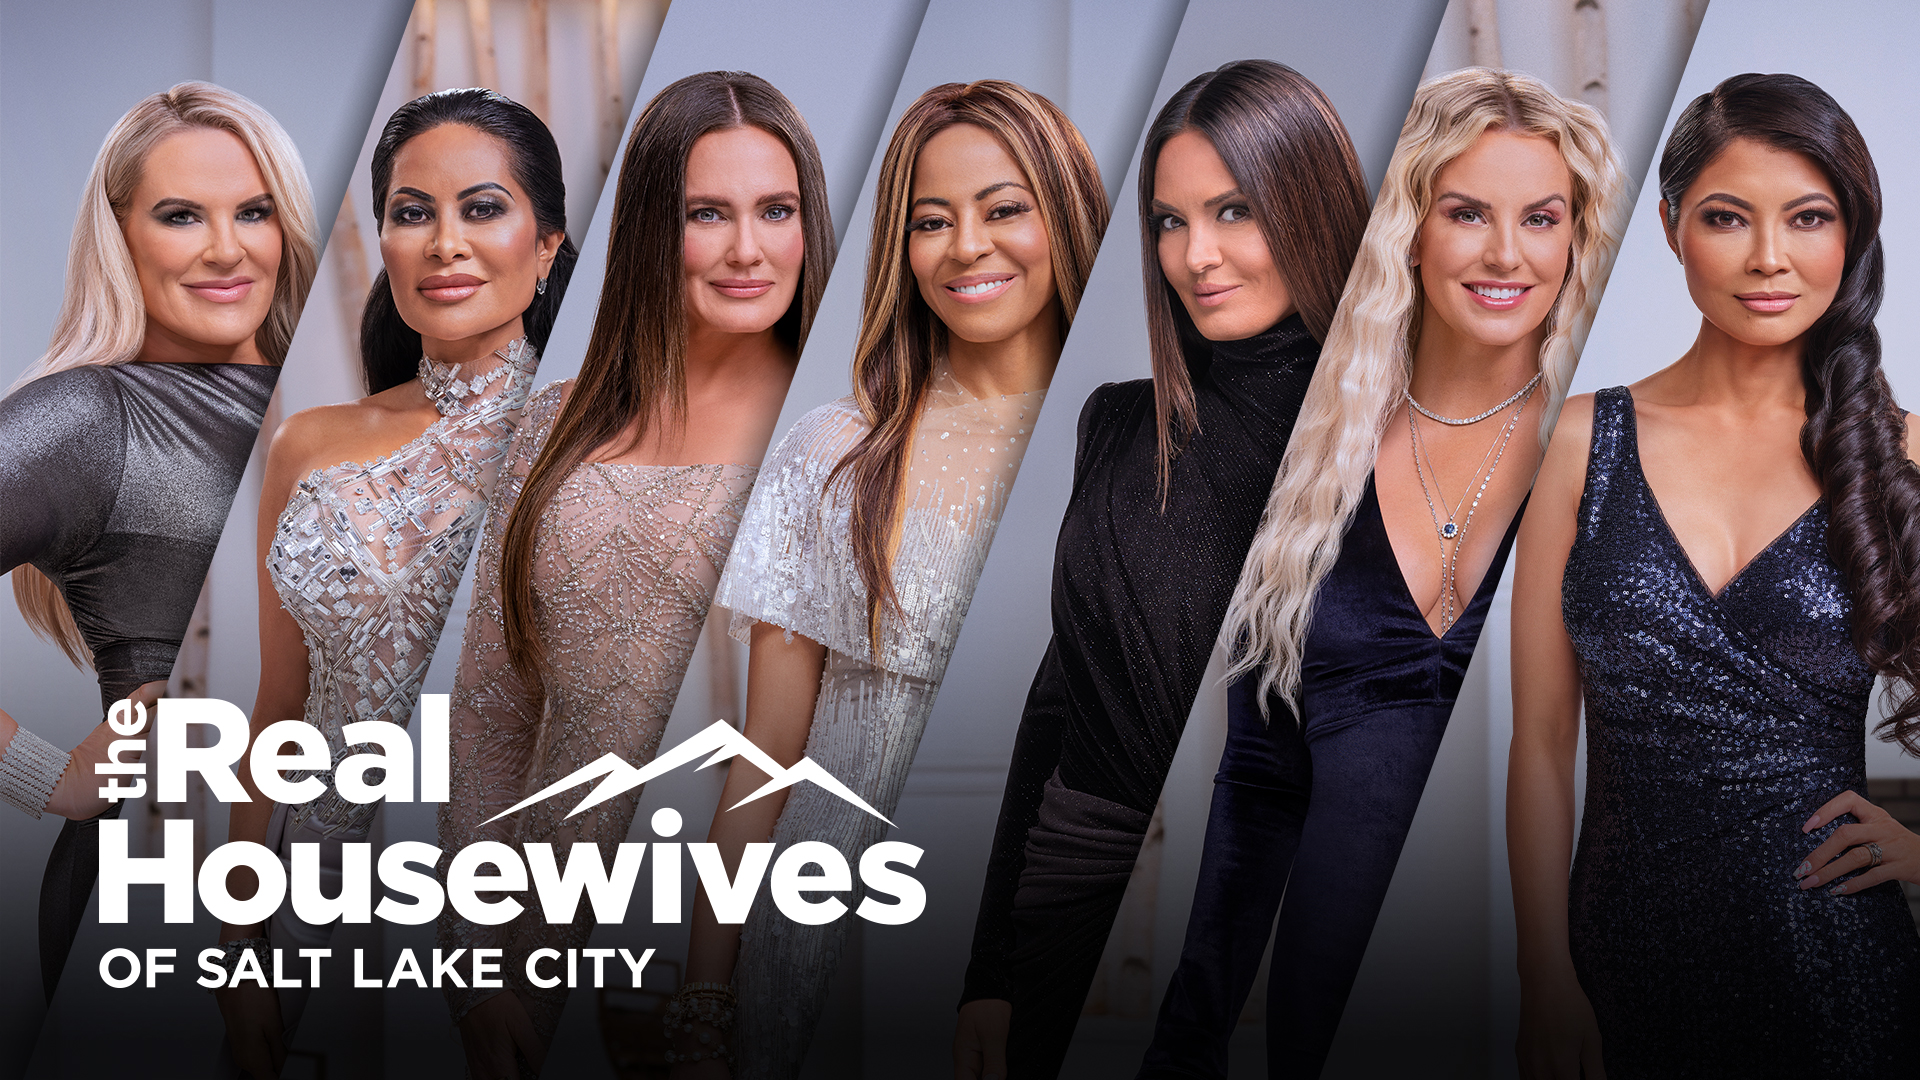 The Real Housewives of Salt Lake City | Bravo TV Official Site